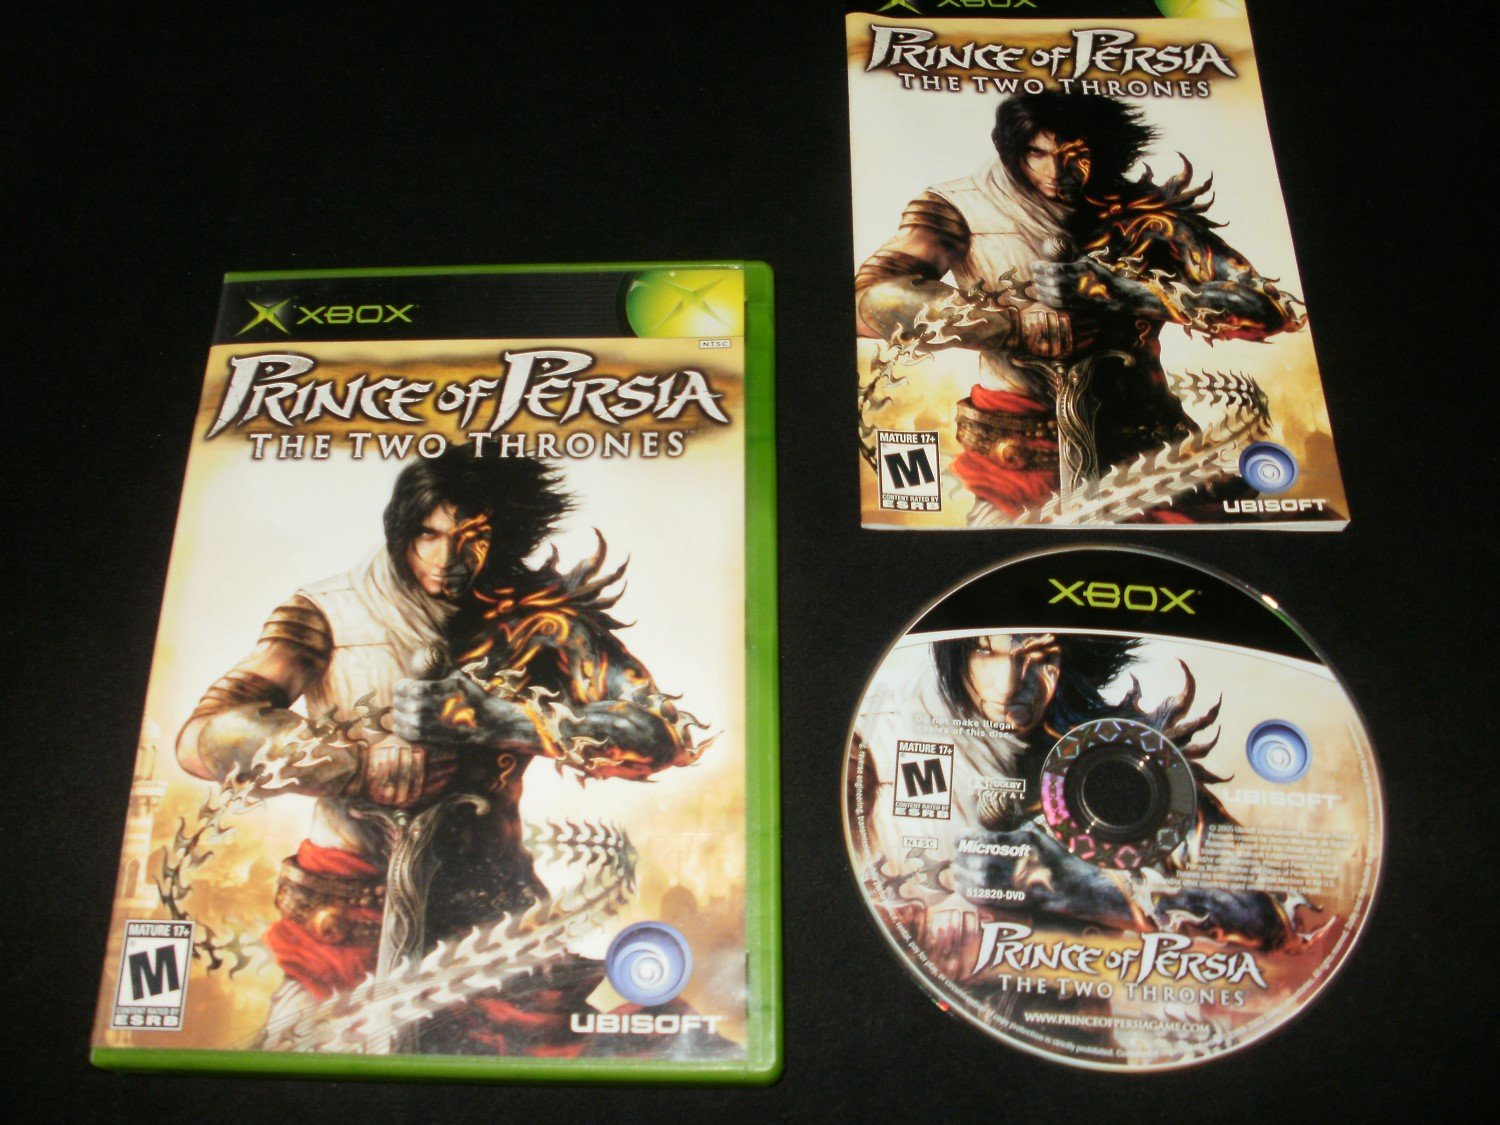 Prince of Persia The Two Thrones - Microsoft Xbox - Complete CIB